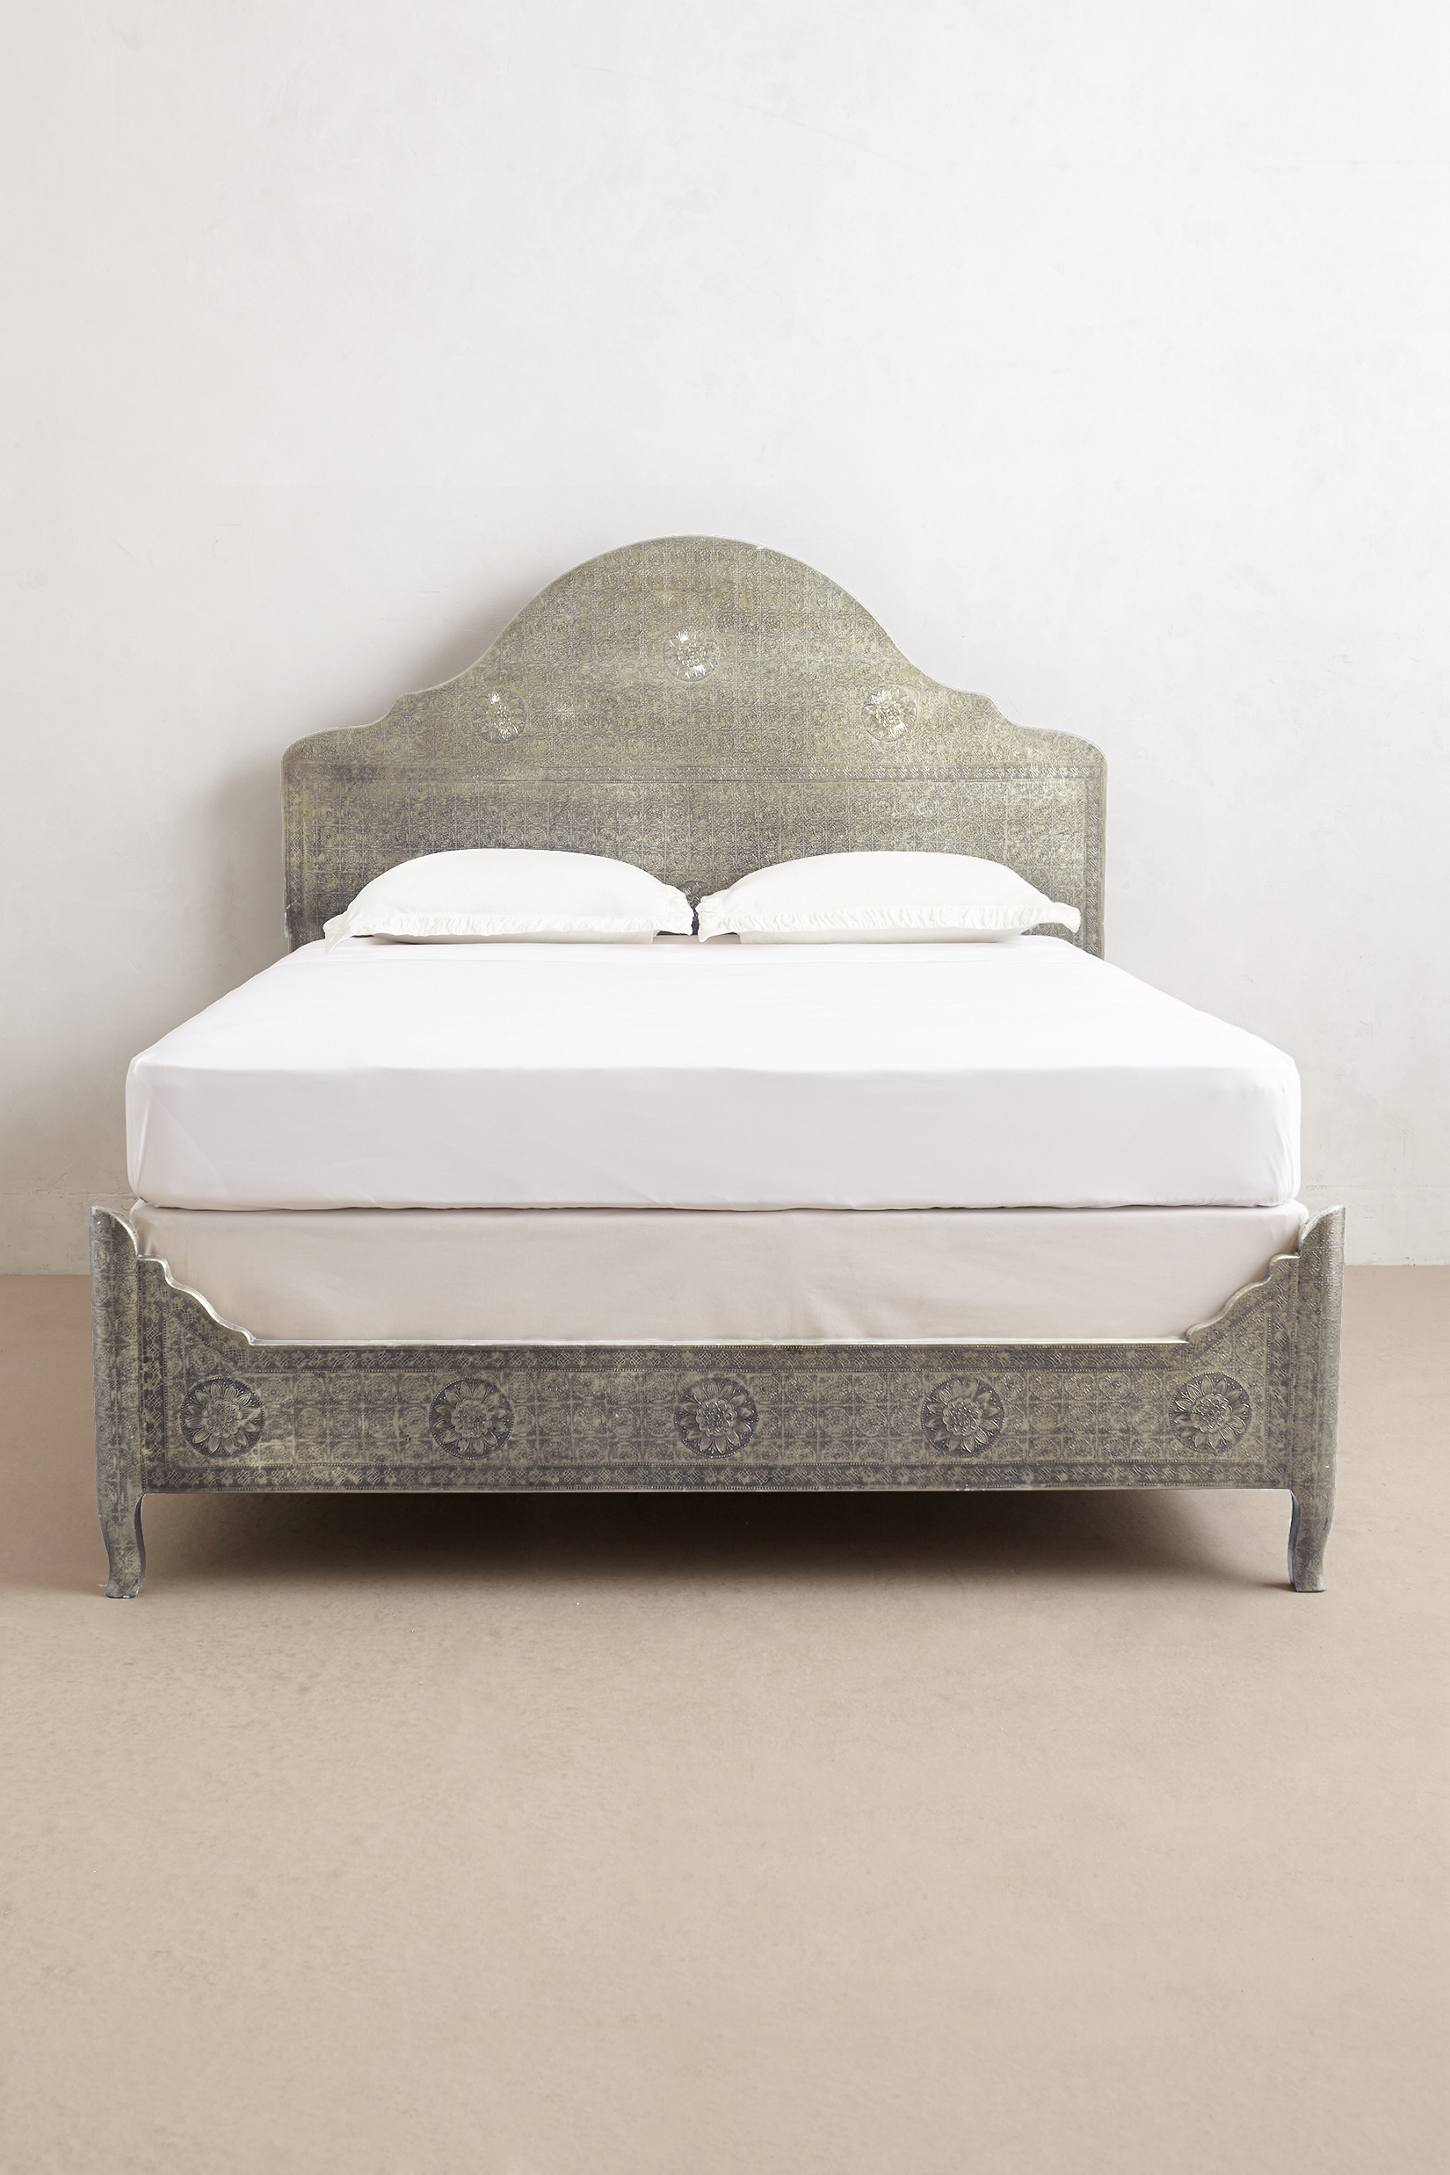 Slide View: 3: Hand-Embossed Bed